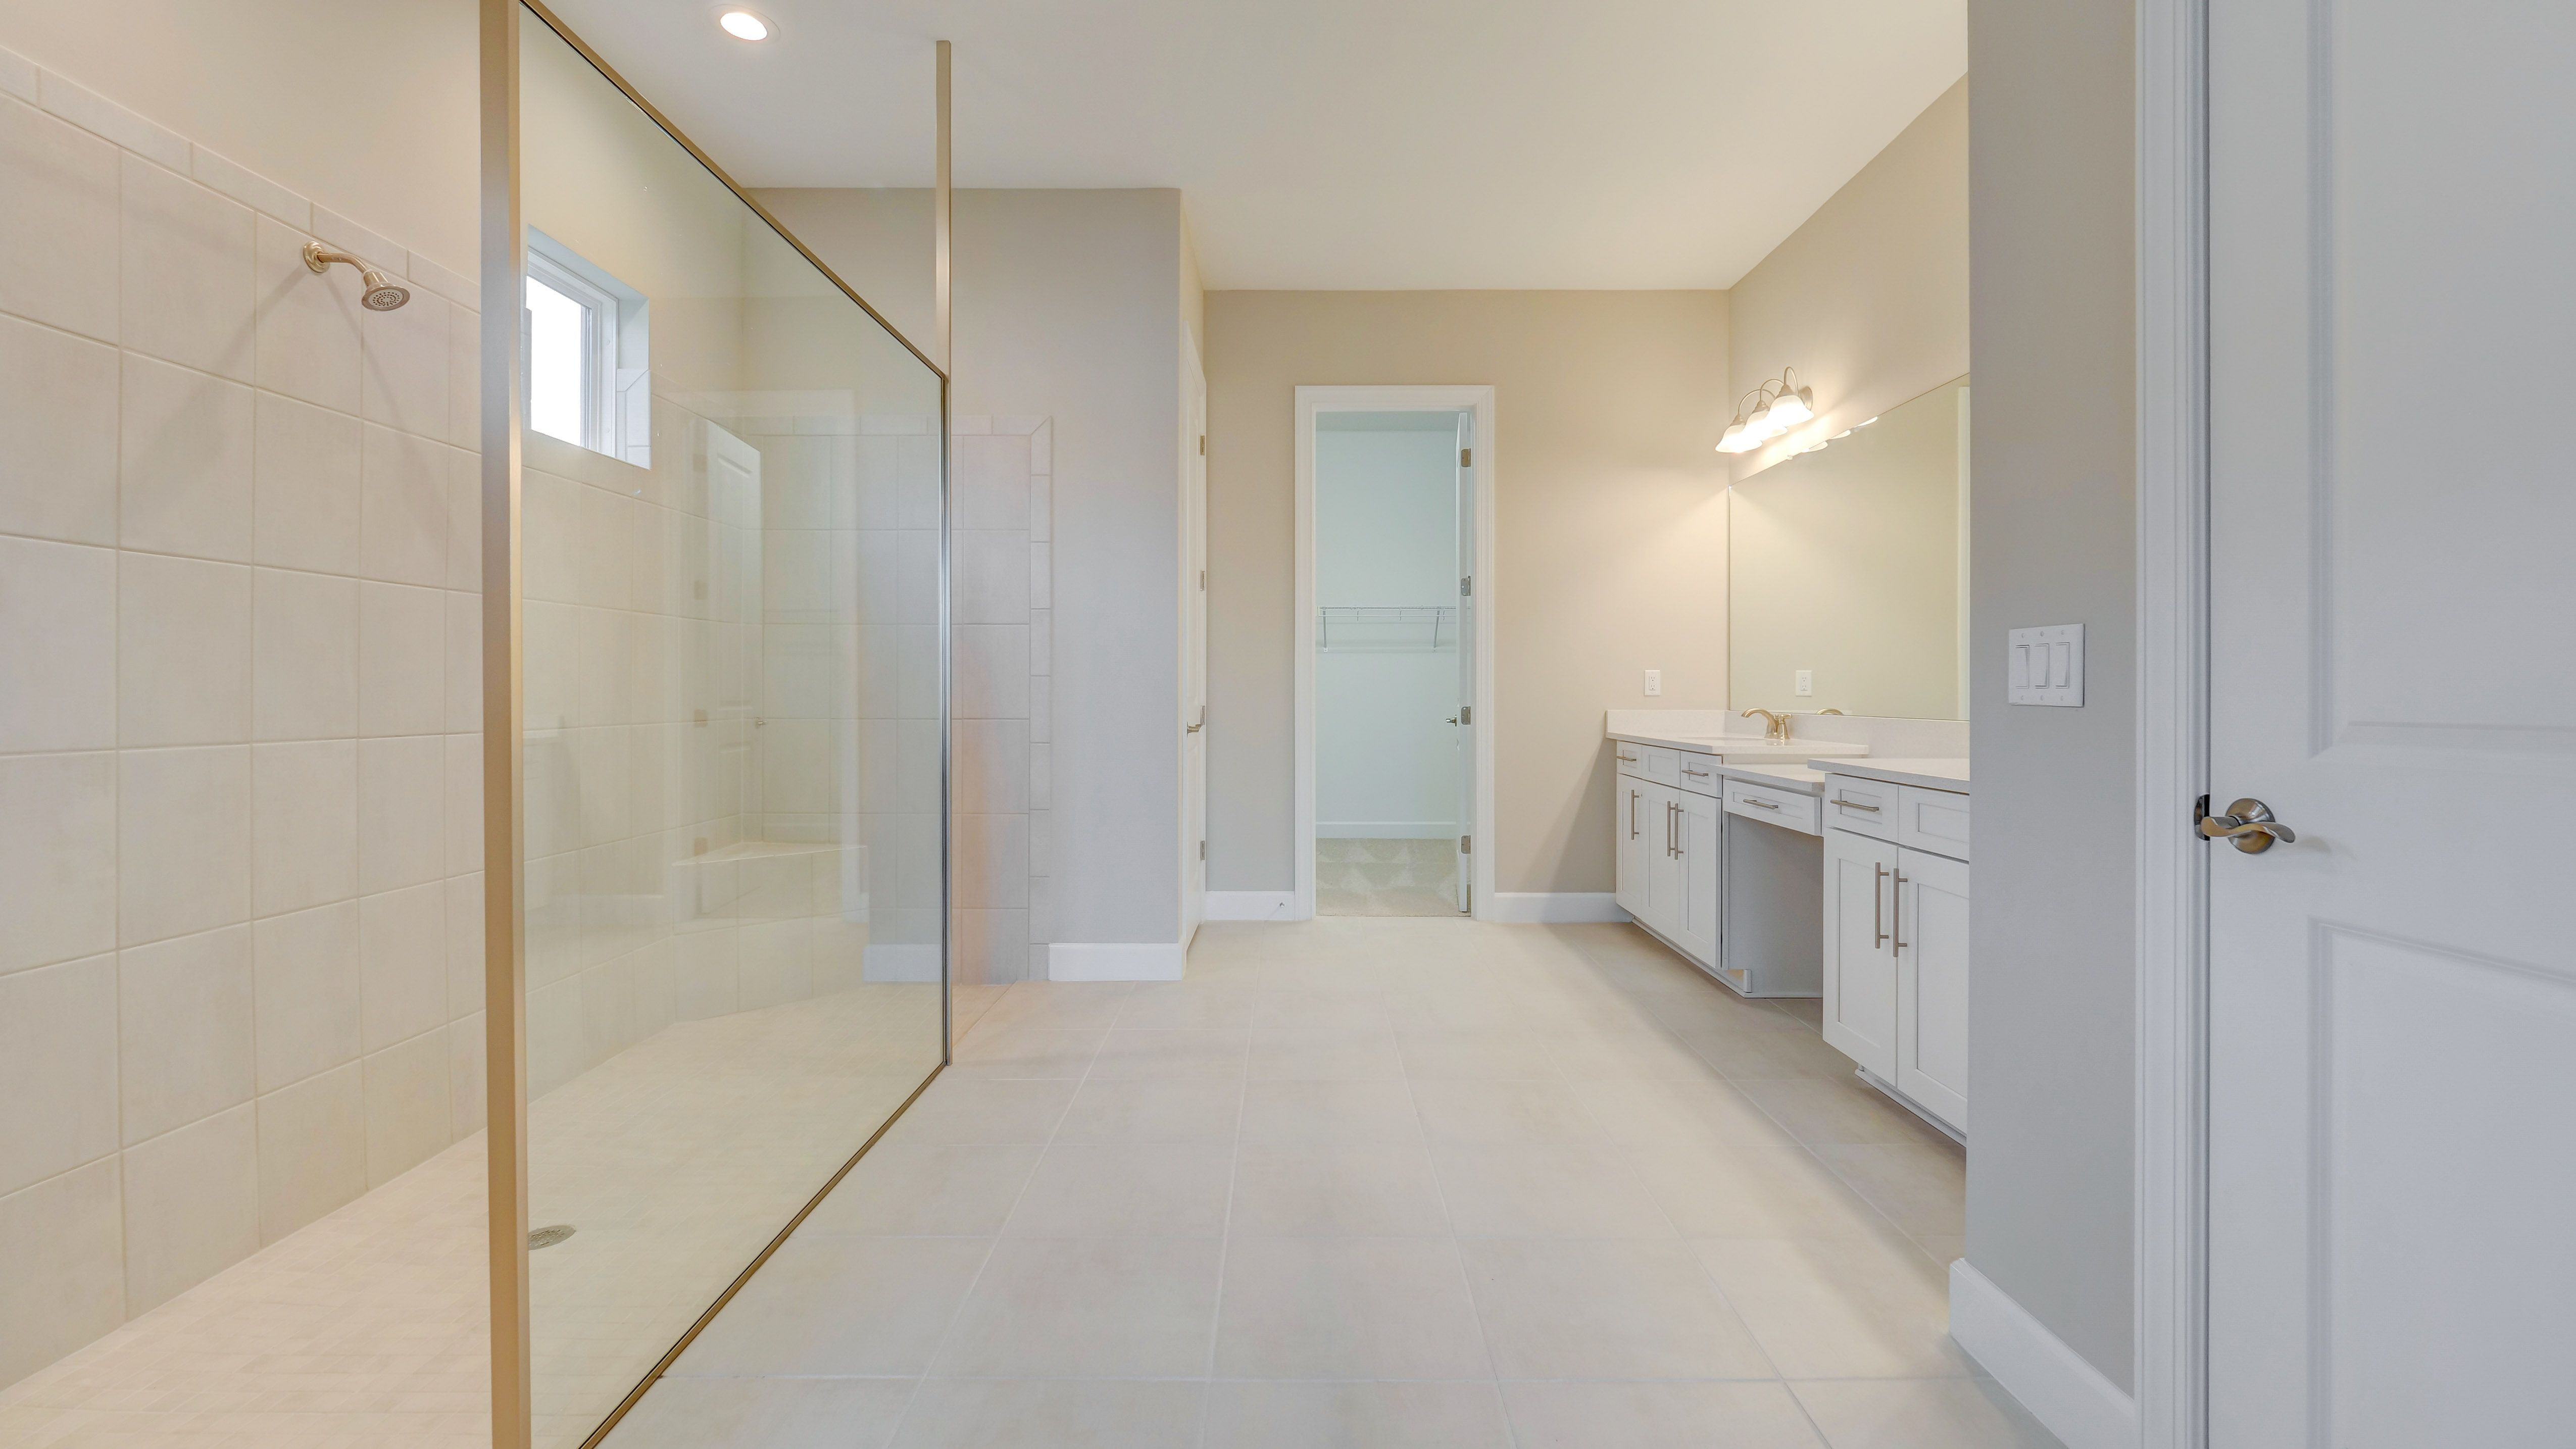 Bathroom featured in the Pallazio Plan By Taylor Morrison in Naples, FL